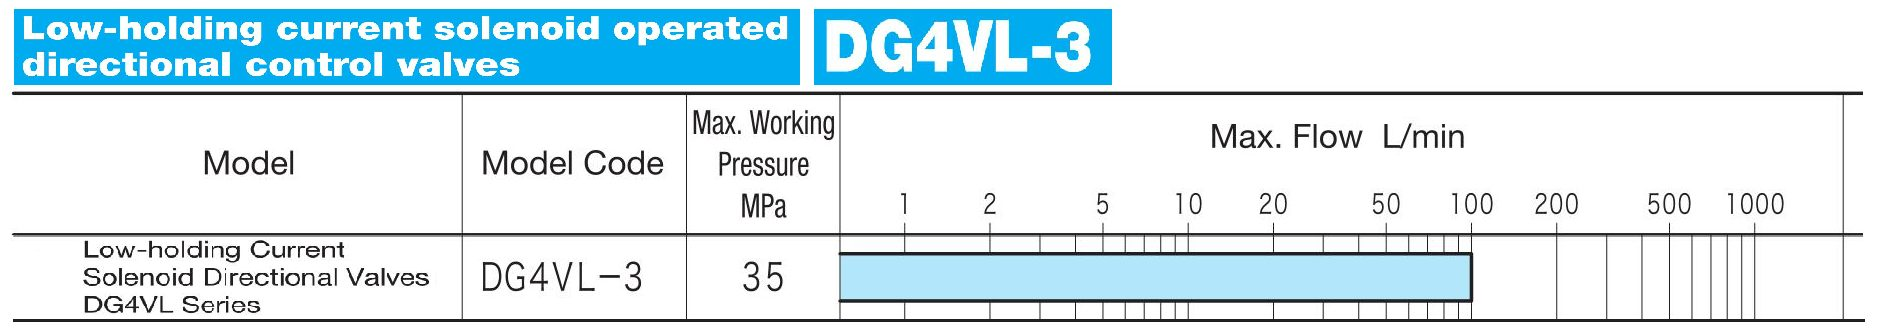 DG4VL3 Lowholding current solenoid operated directional control